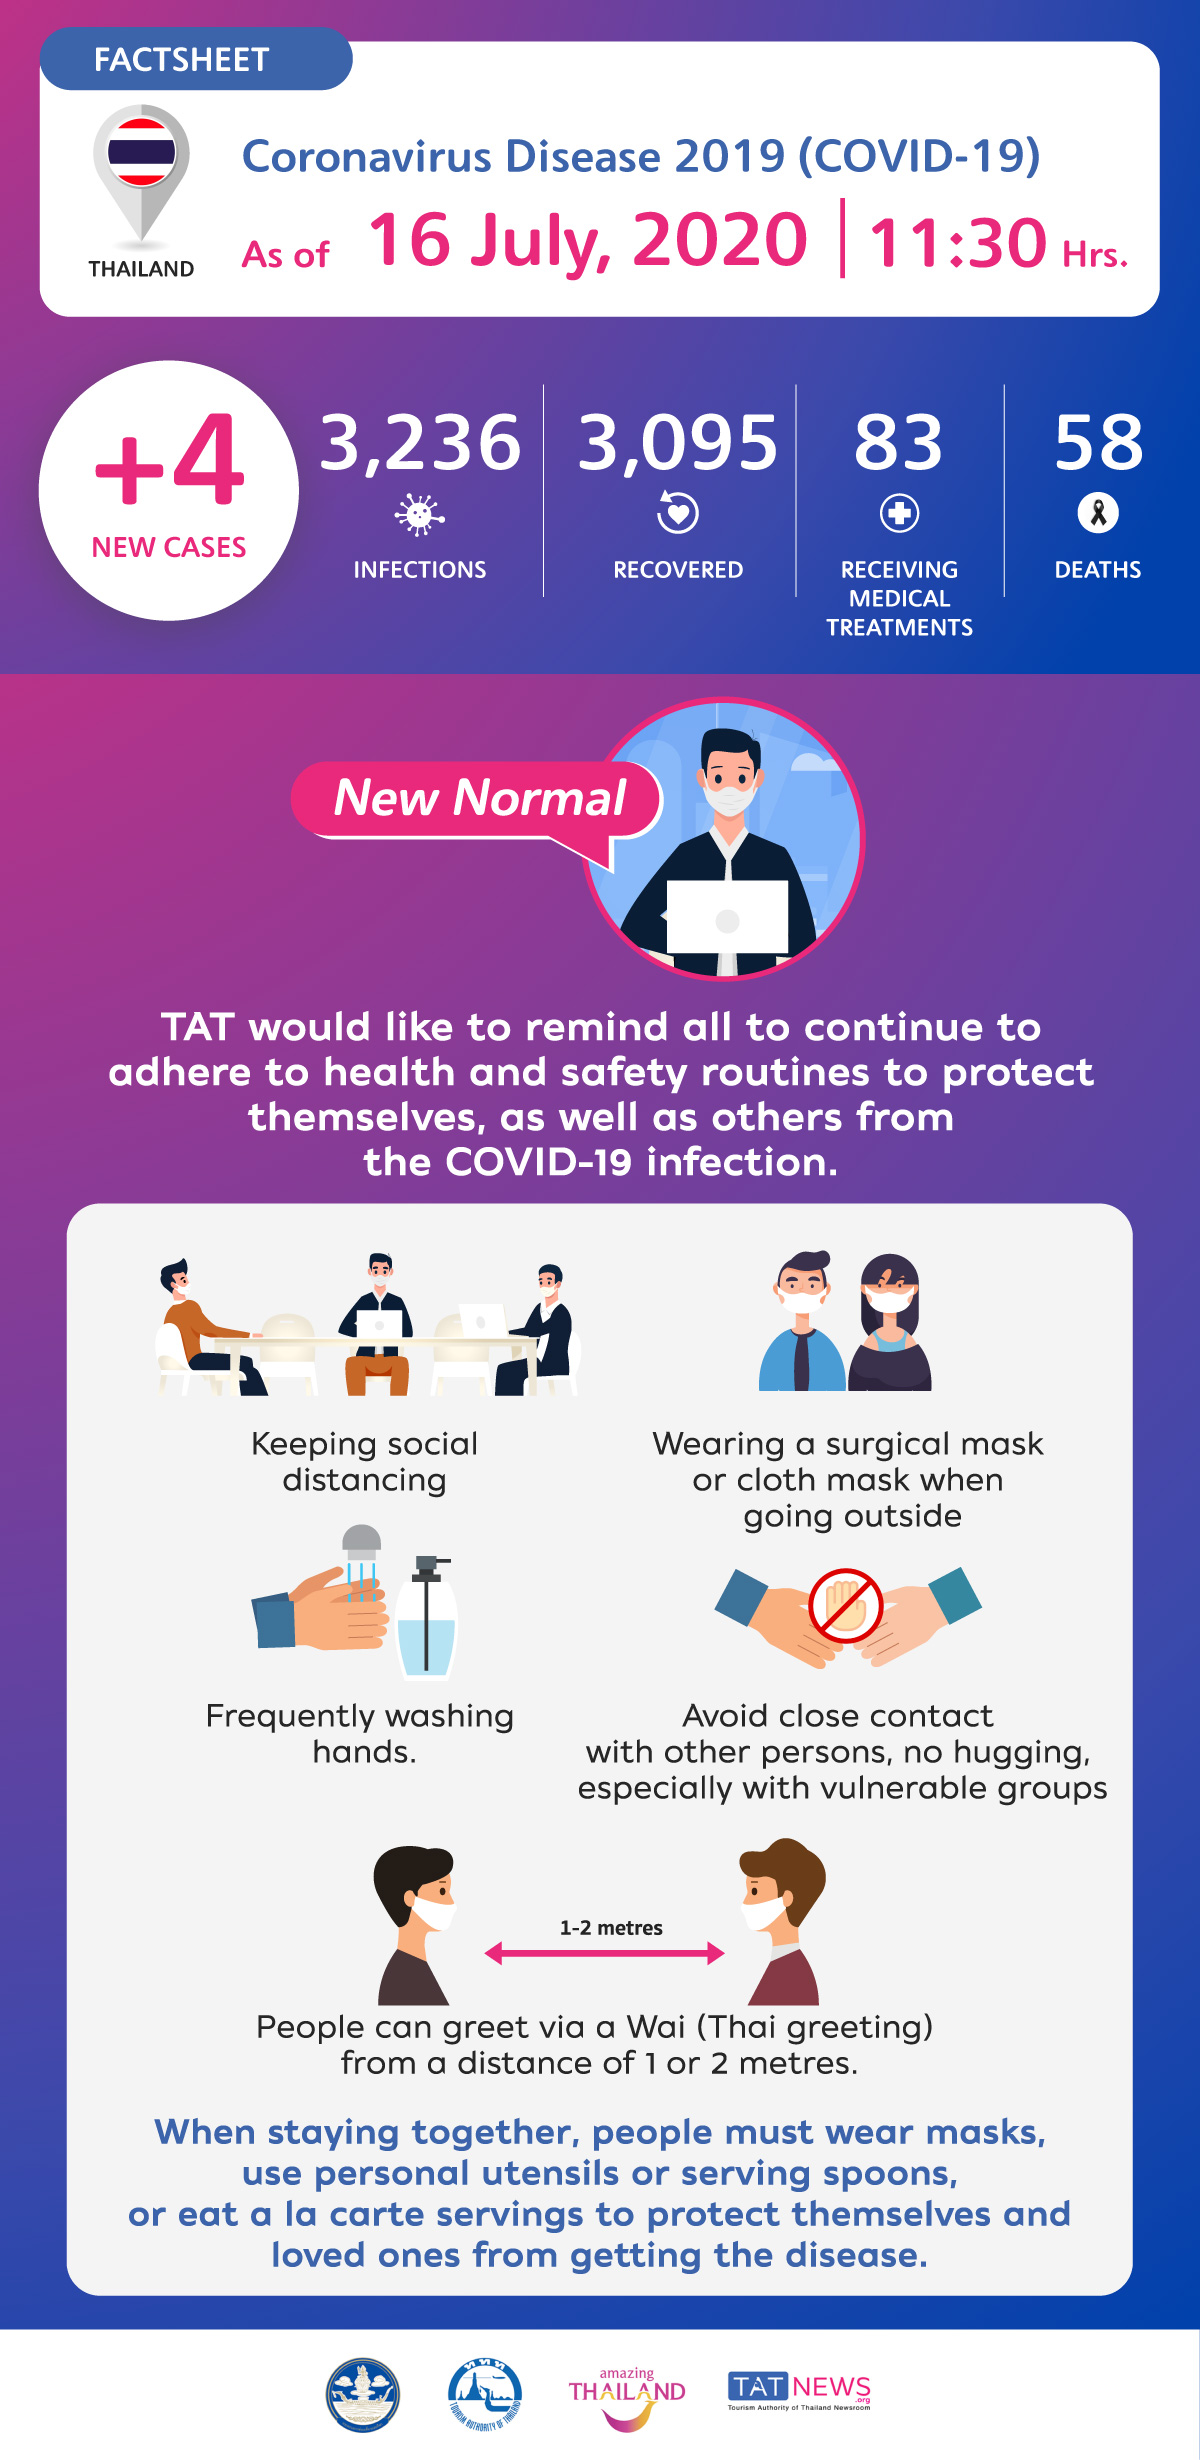 Coronavirus Disease 2019 (COVID-19) situation in Thailand as of 16 July 2020, 11.30 Hrs.